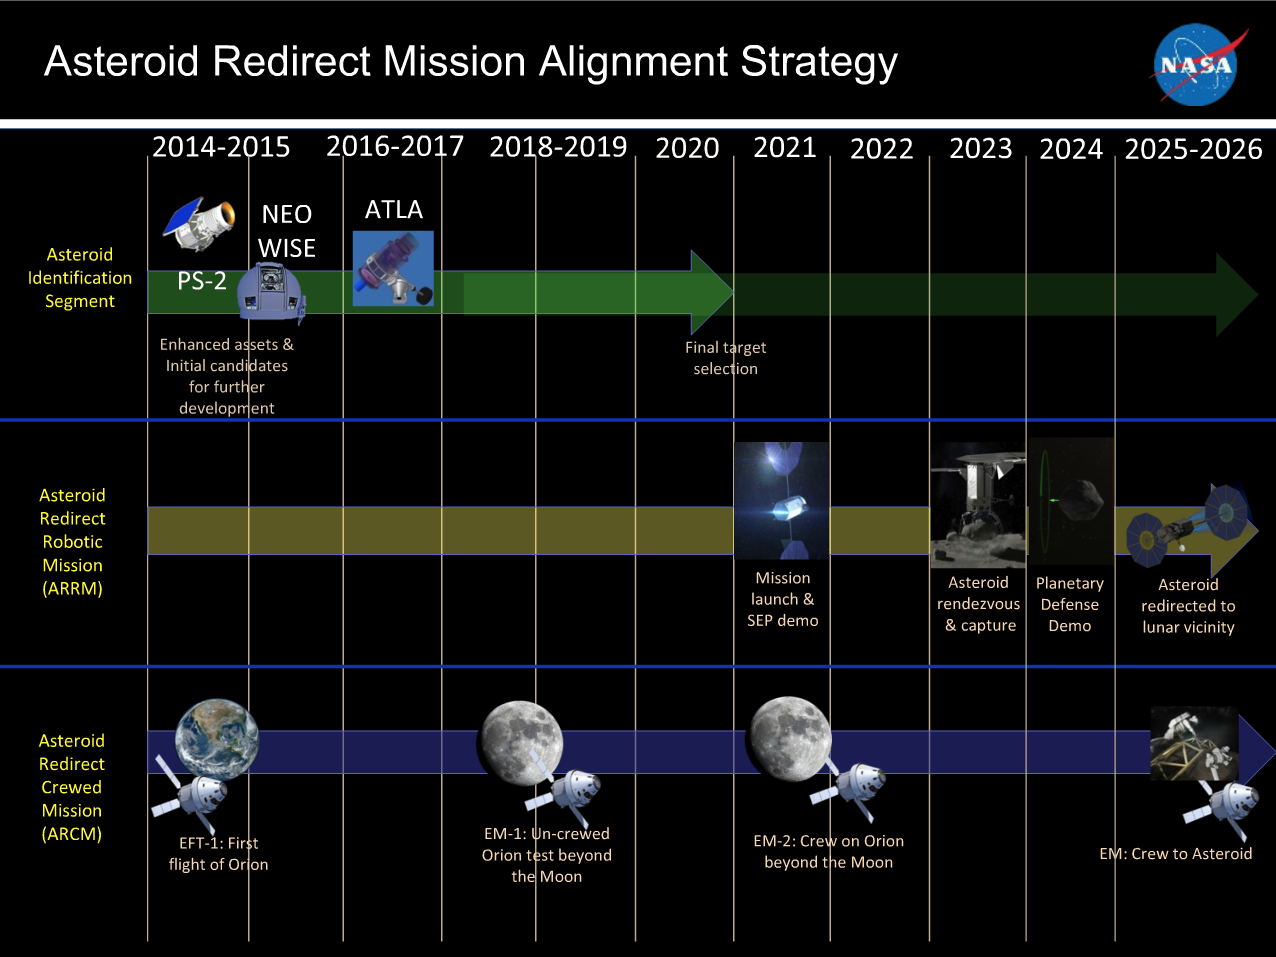 Notional timeline, indicating key milestones in the Asteroid Redirect Mission. Image Credit: NASA